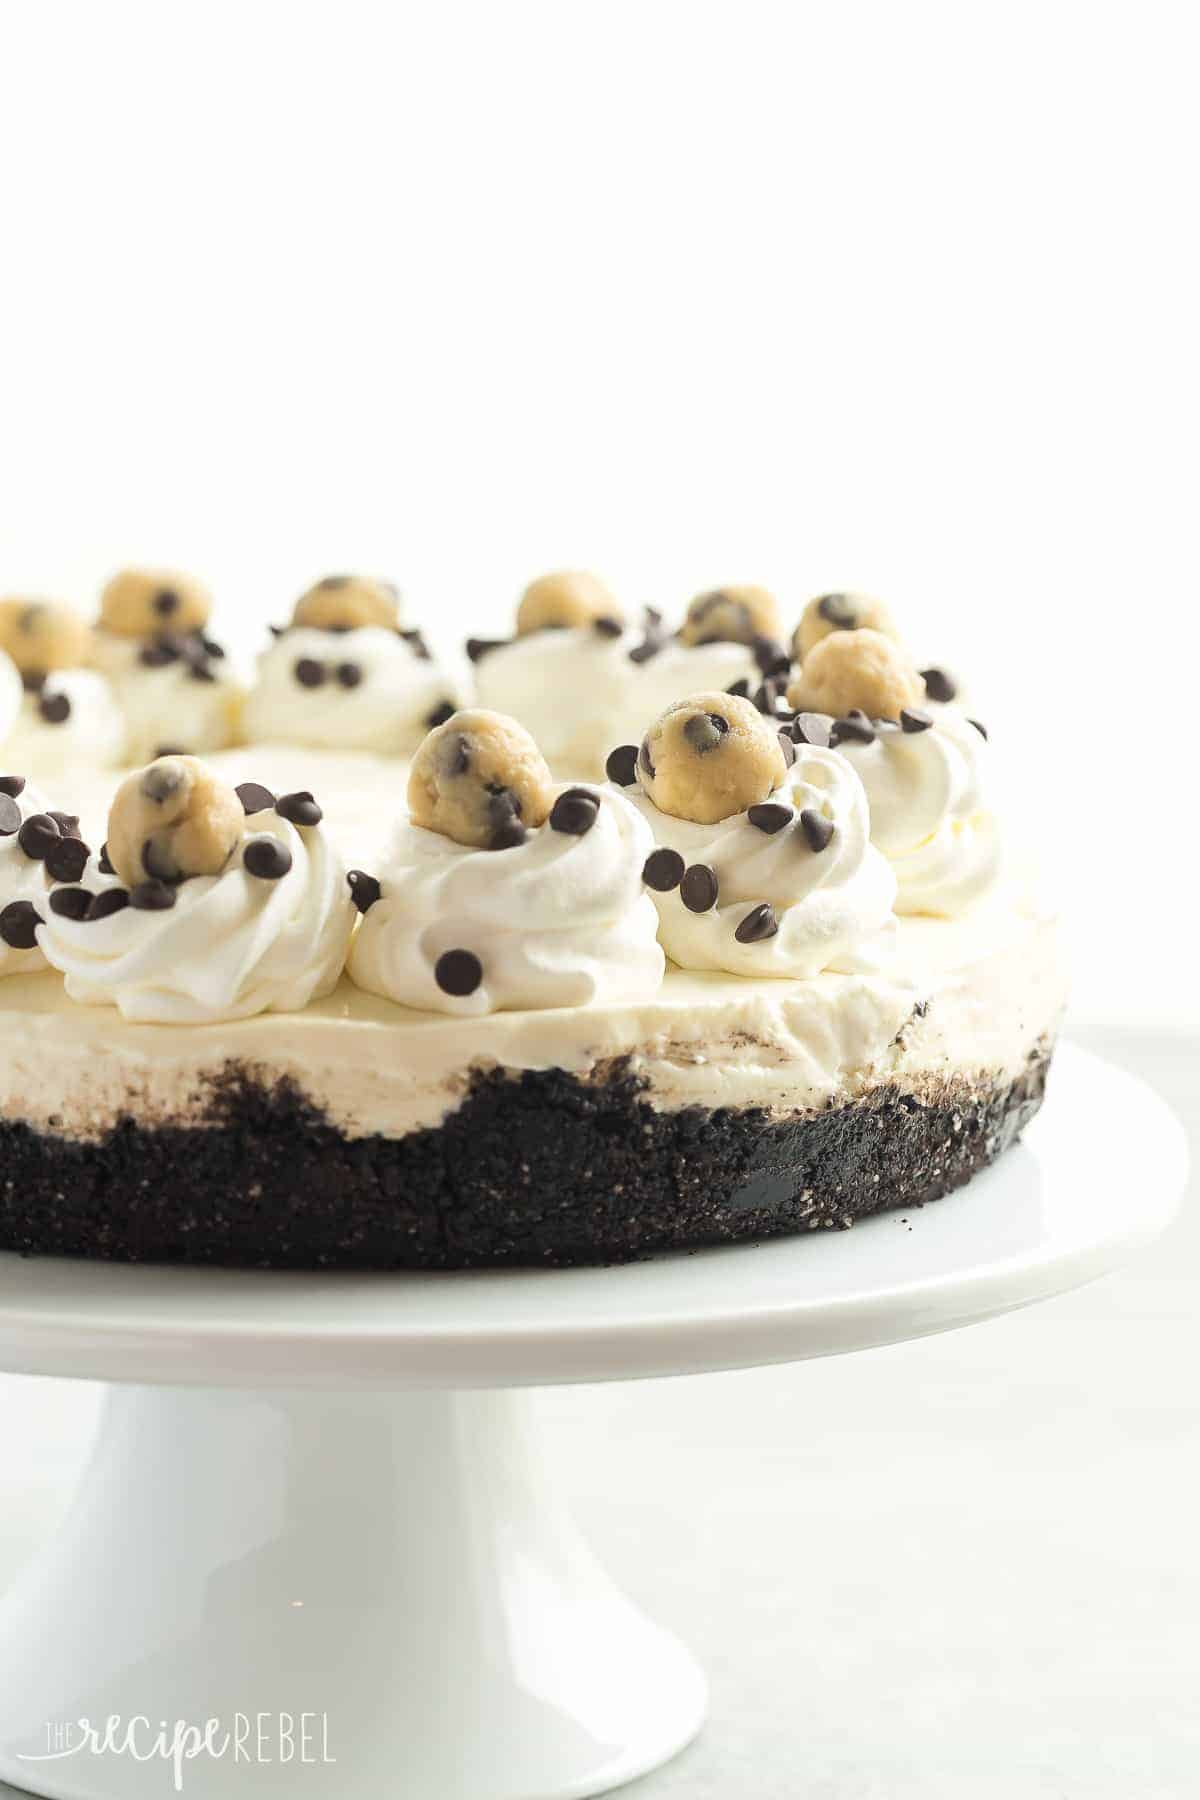 Everyone loved this NO BAKE Cookie Dough Cheesecake -- it's made with edible cookie dough and an Oreo crust and is an extra special dessert for the holidays!